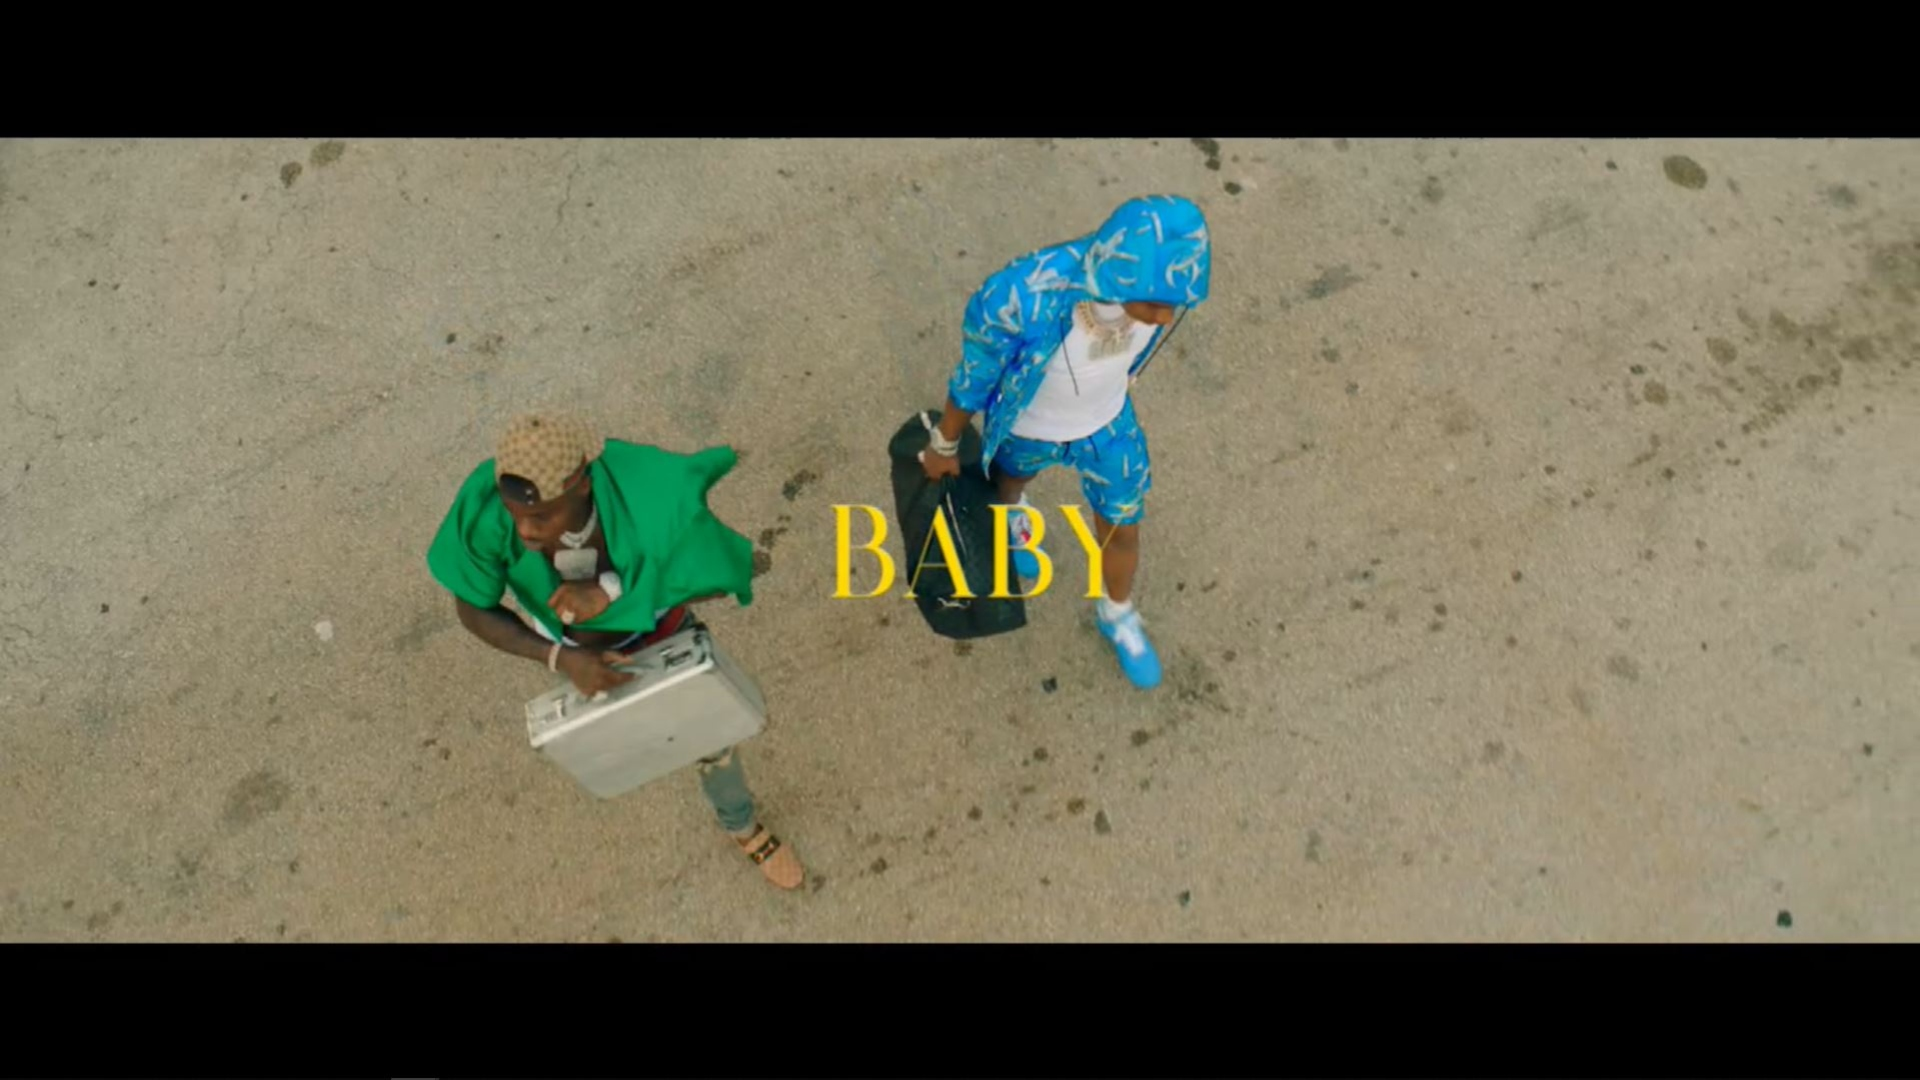 Lil Baby - Baby ft Dababy